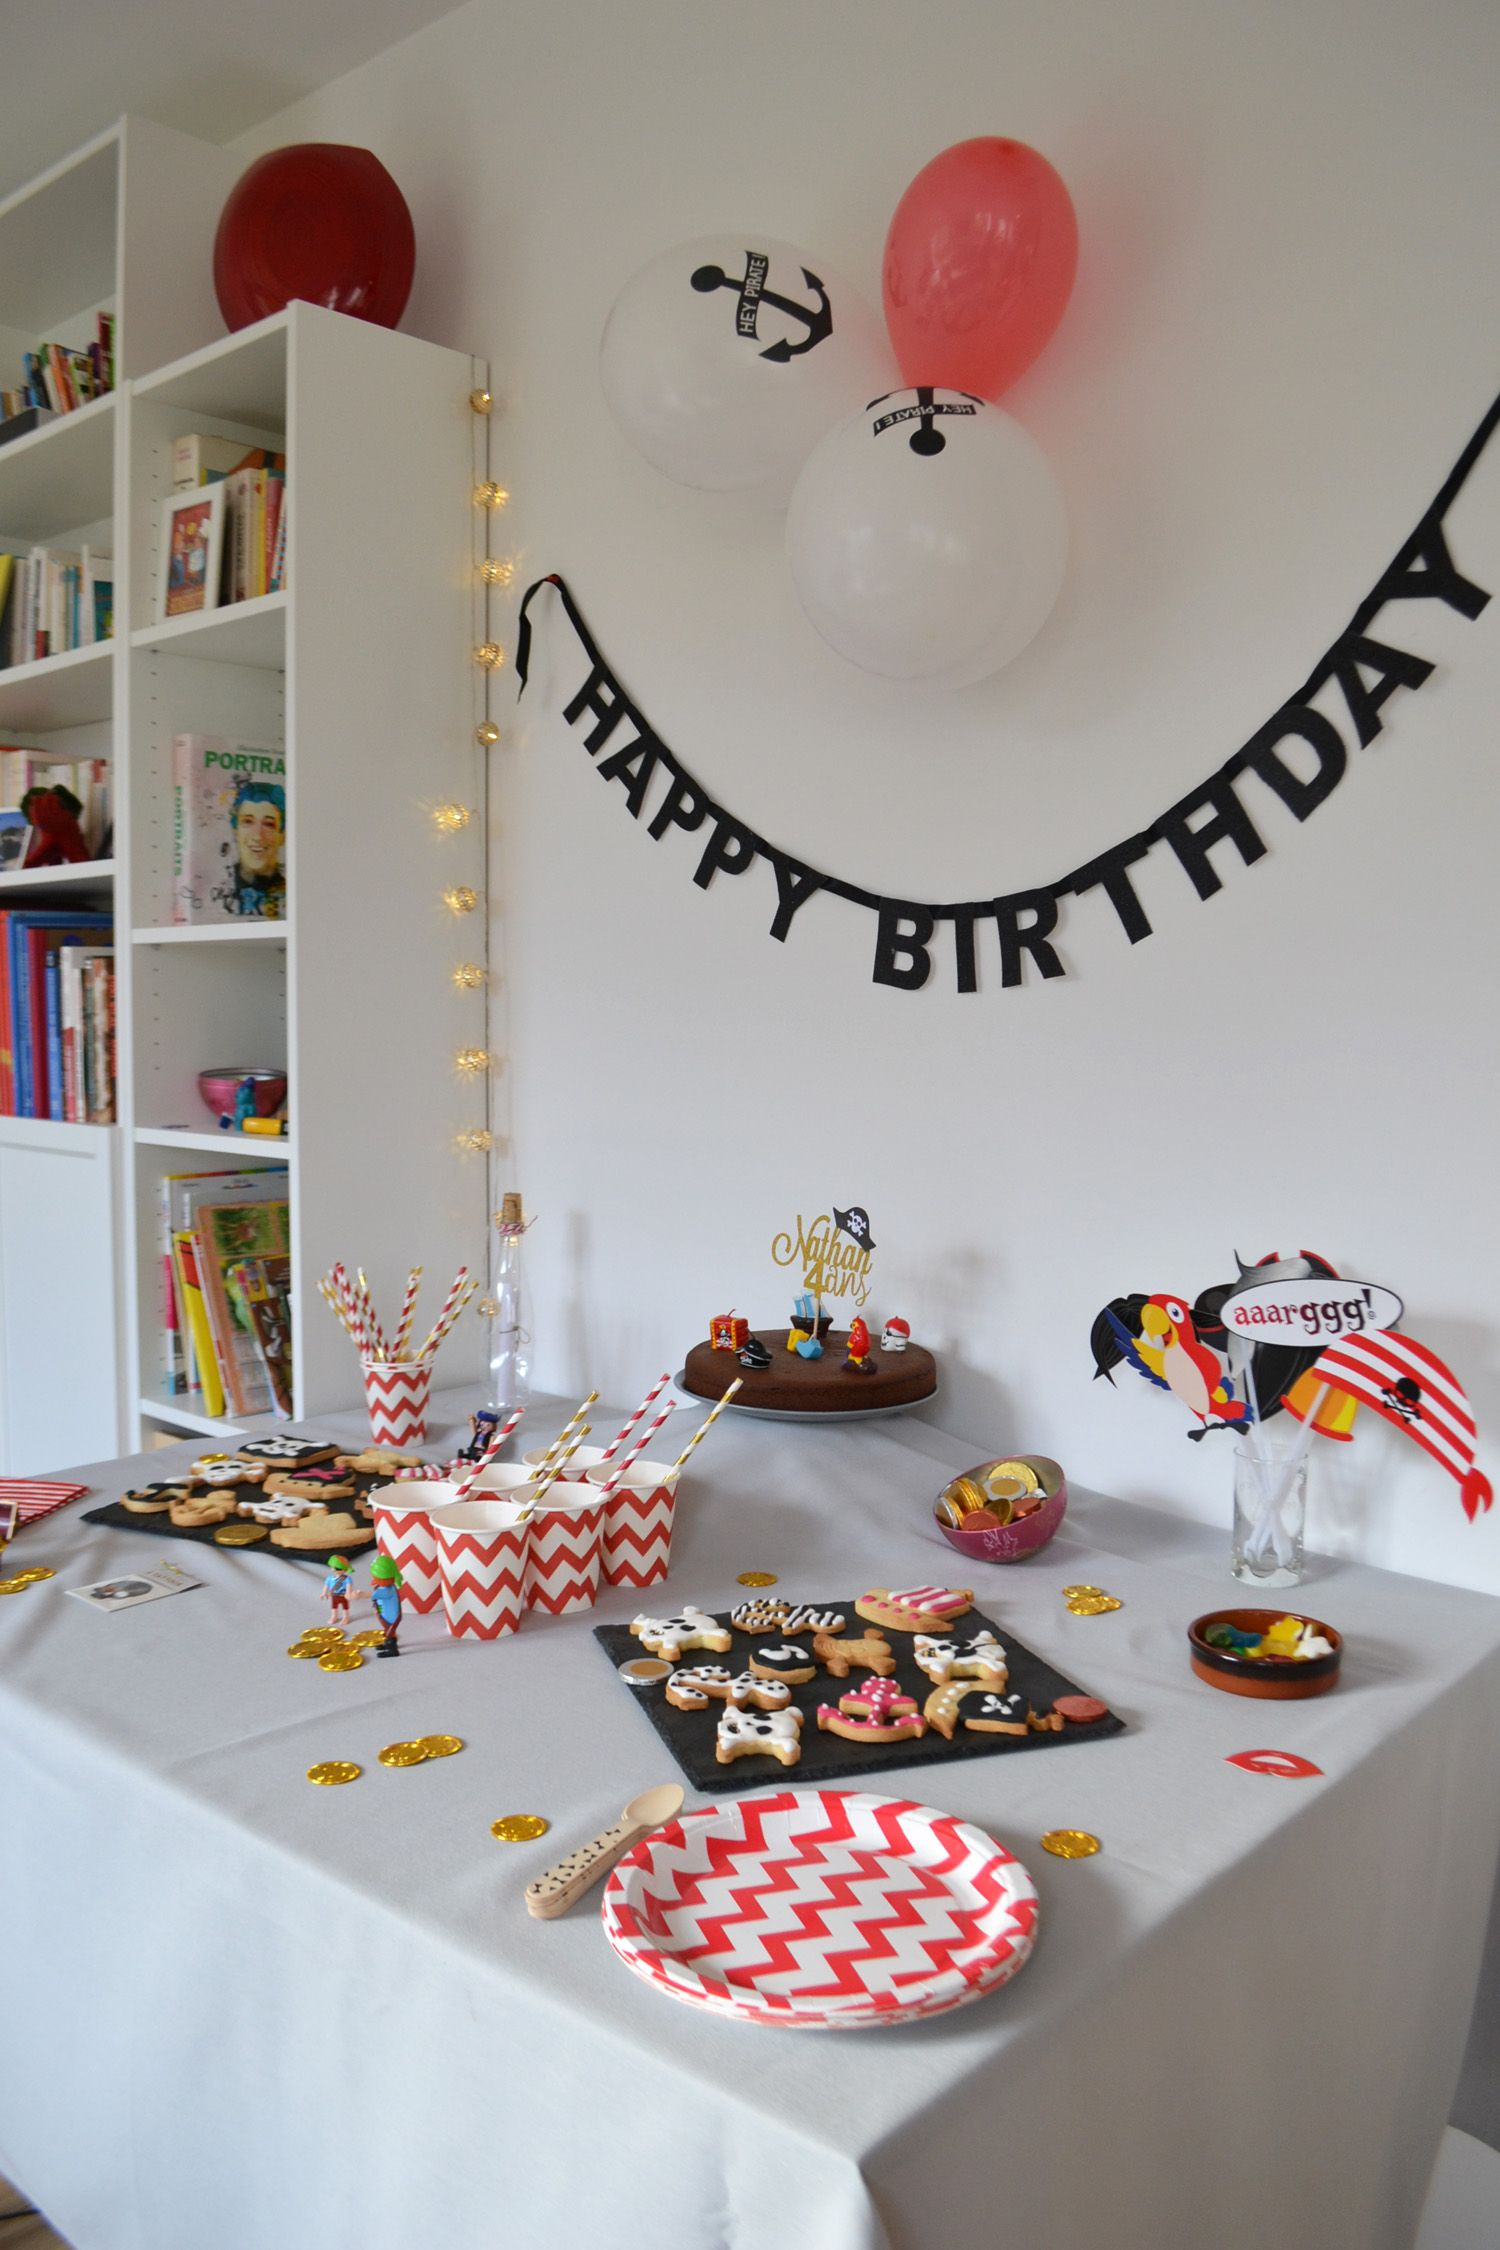 tuto pour une d co de table pirate kit my little day anniversaire pirate pinterest deco. Black Bedroom Furniture Sets. Home Design Ideas